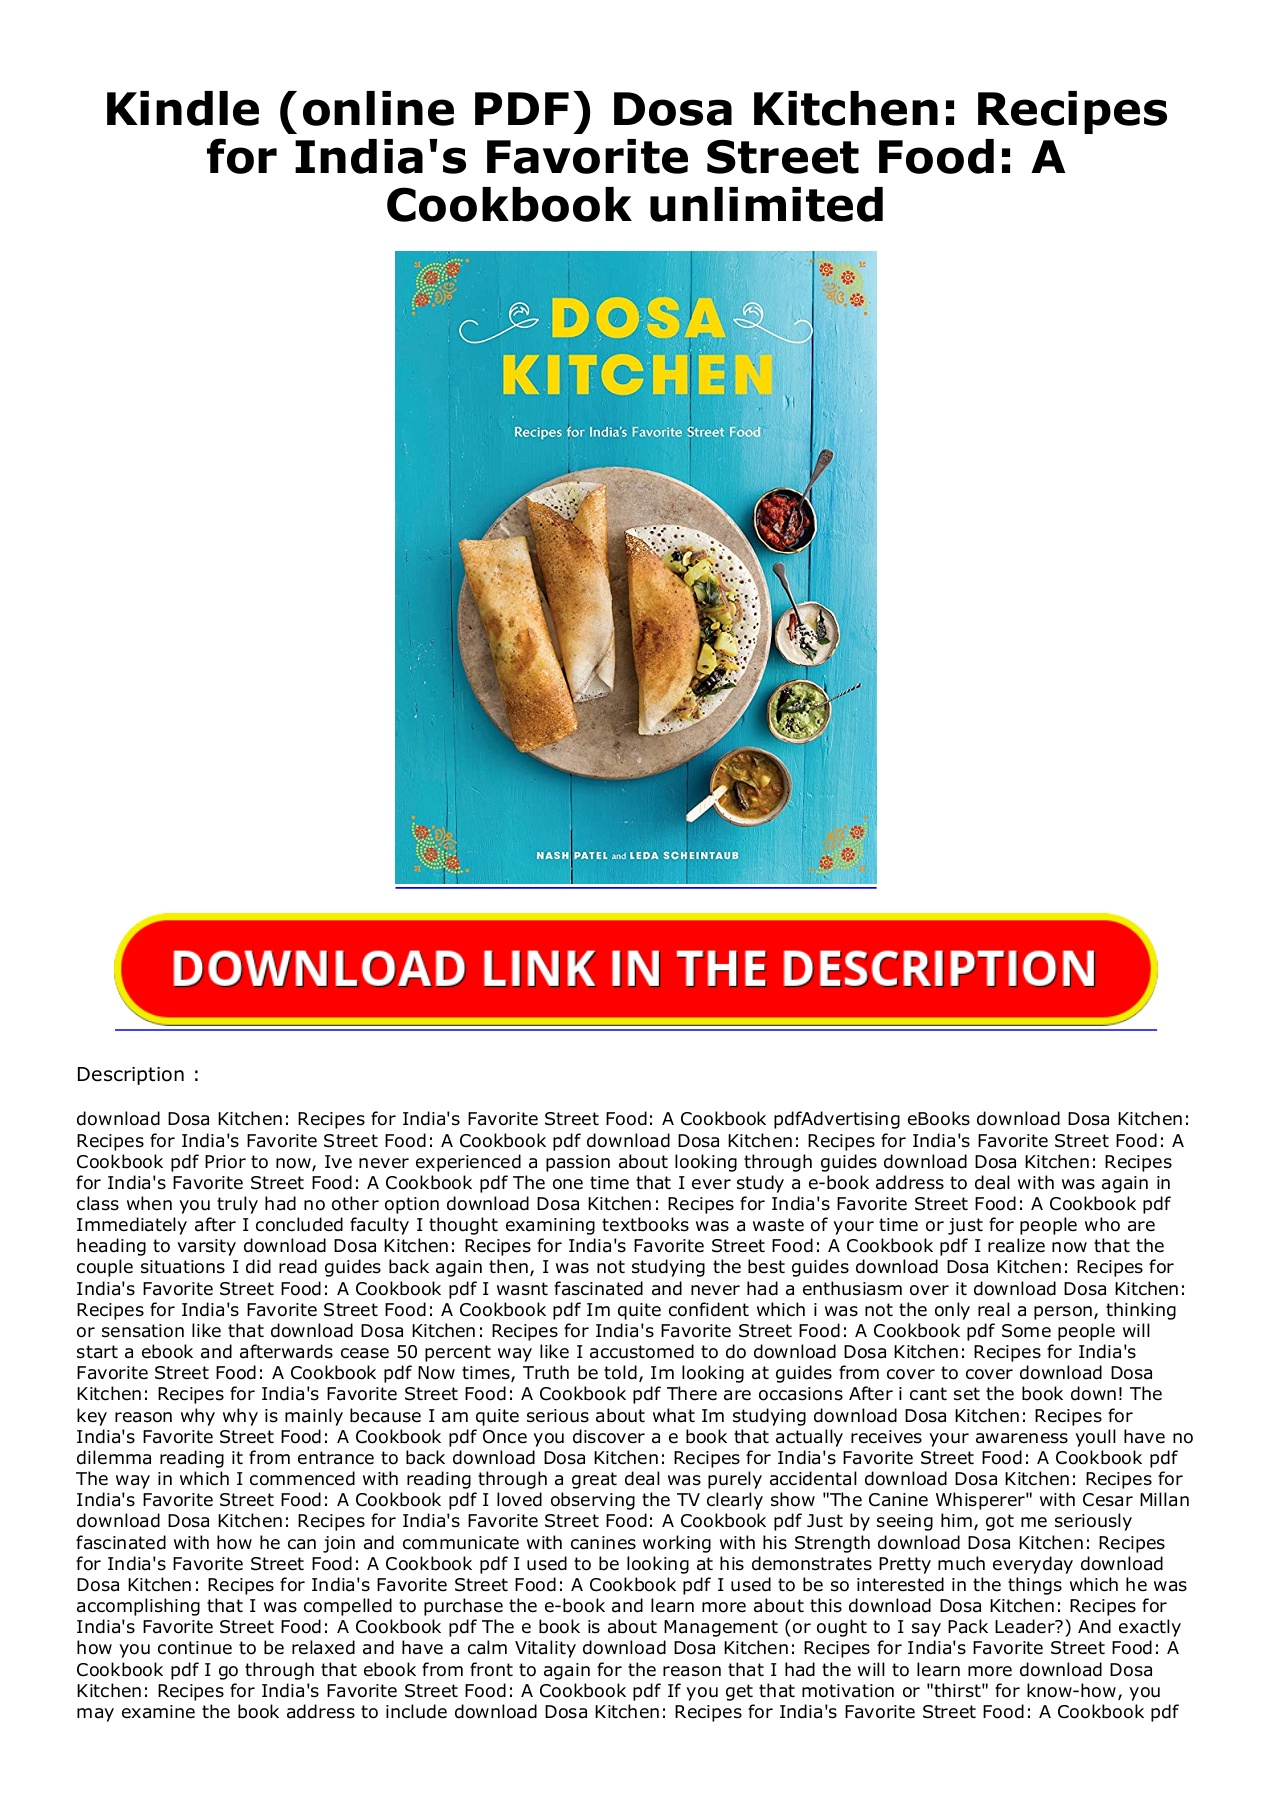 Kindle Online Pdf Dosa Kitchen Recipes For India S Favorite Street Food A Cookbook Unlimited